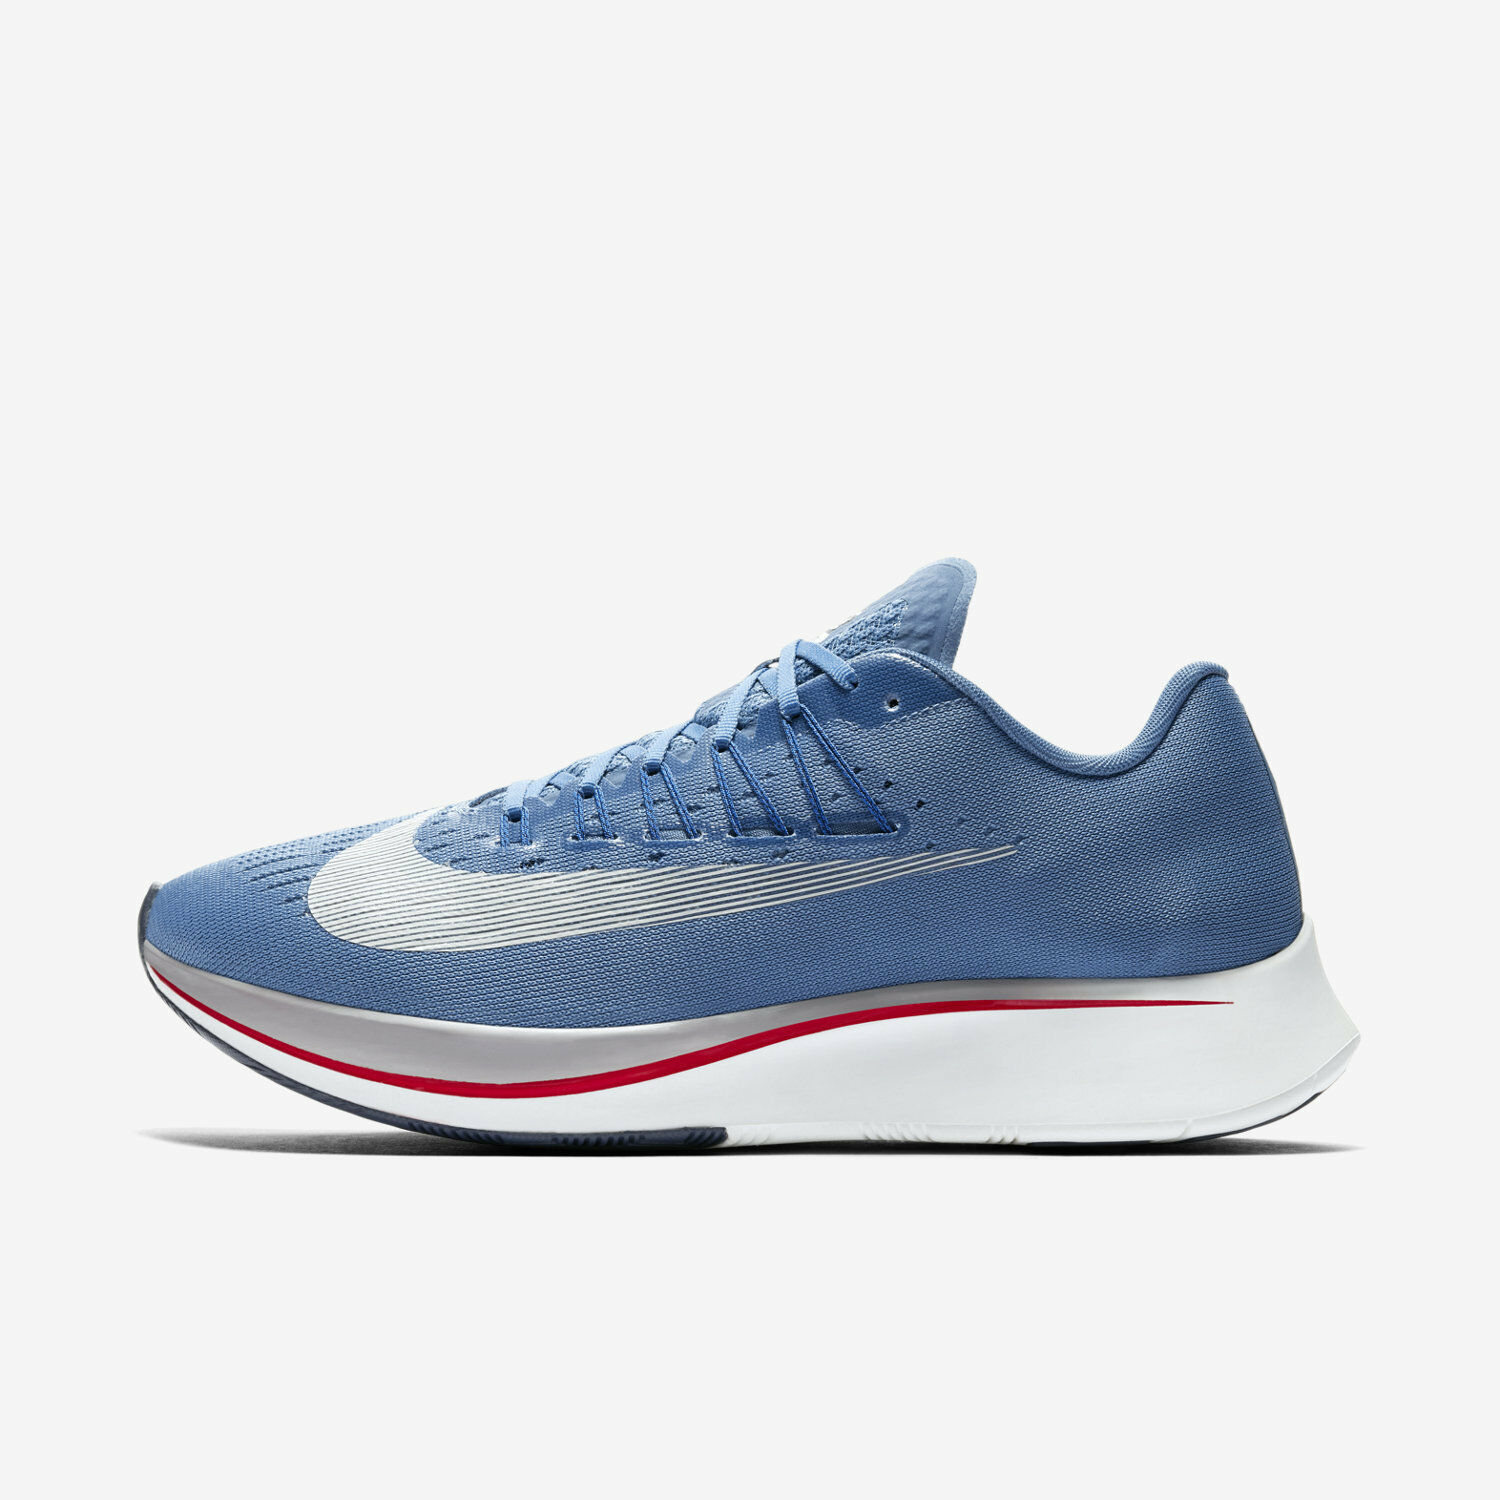 Mens Nike Zoom Fly Sz 7 Aegean Storm/Summit White 880848-402 FREE SHIPPING The latest discount shoes for men and women